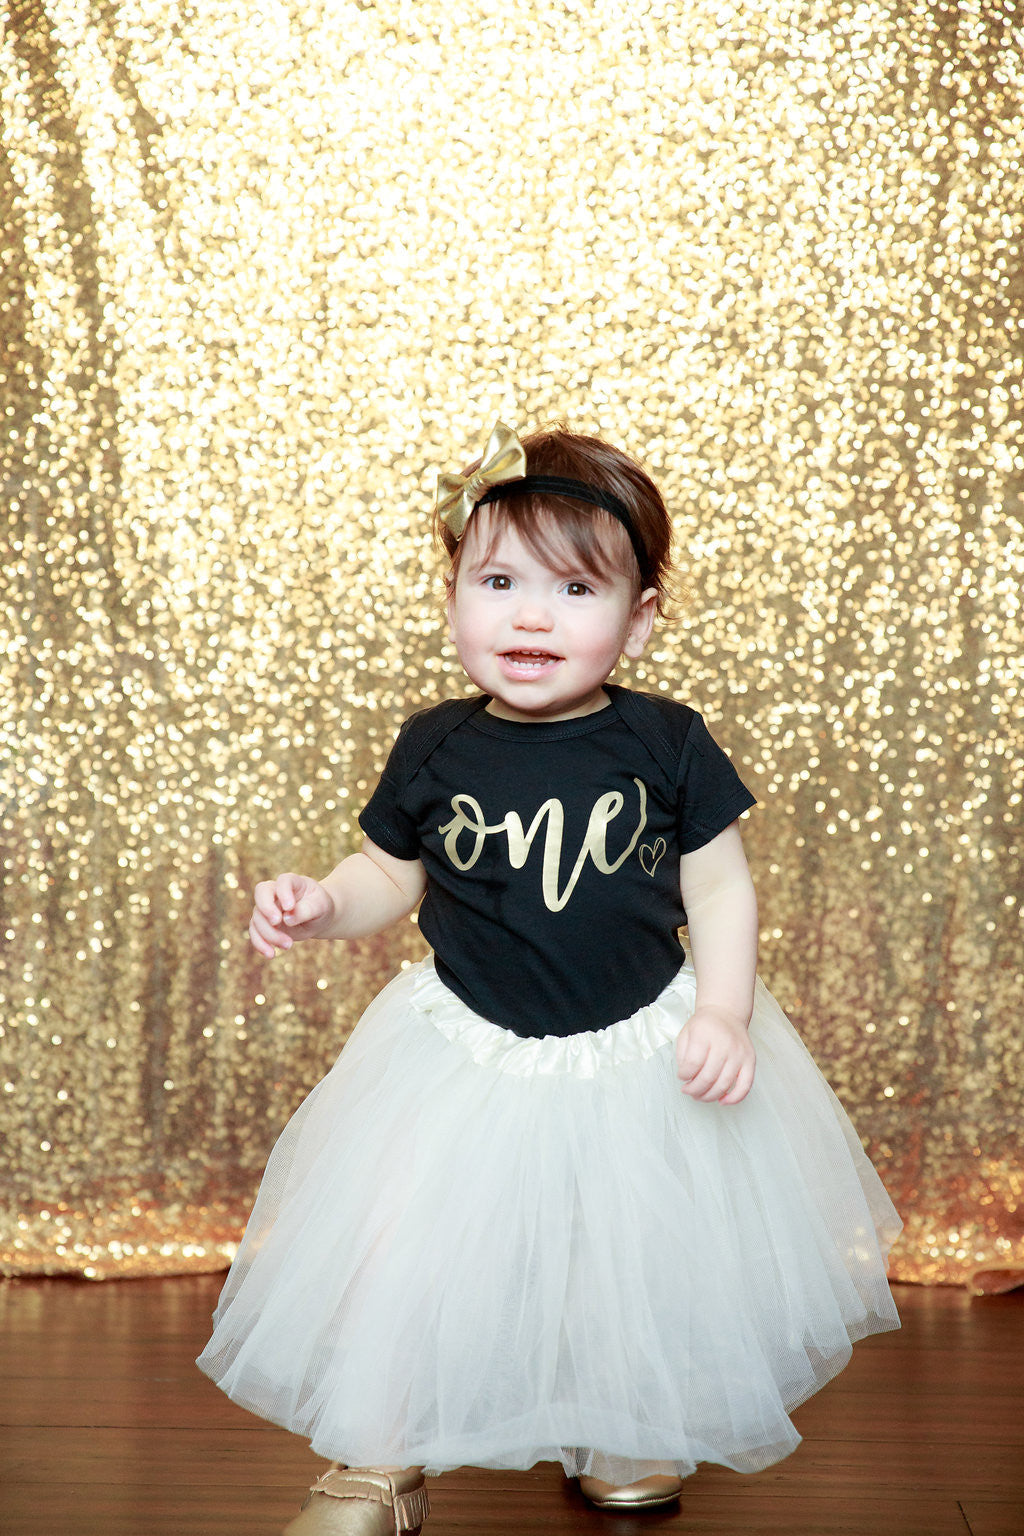 1st Birthday Outfit Girl.Live Sale 1st Birthday Girl Outfit Gold First Birthday Outfit Birthday Tutu Ivory Black Tutu Outfit Cake Smash Outfit